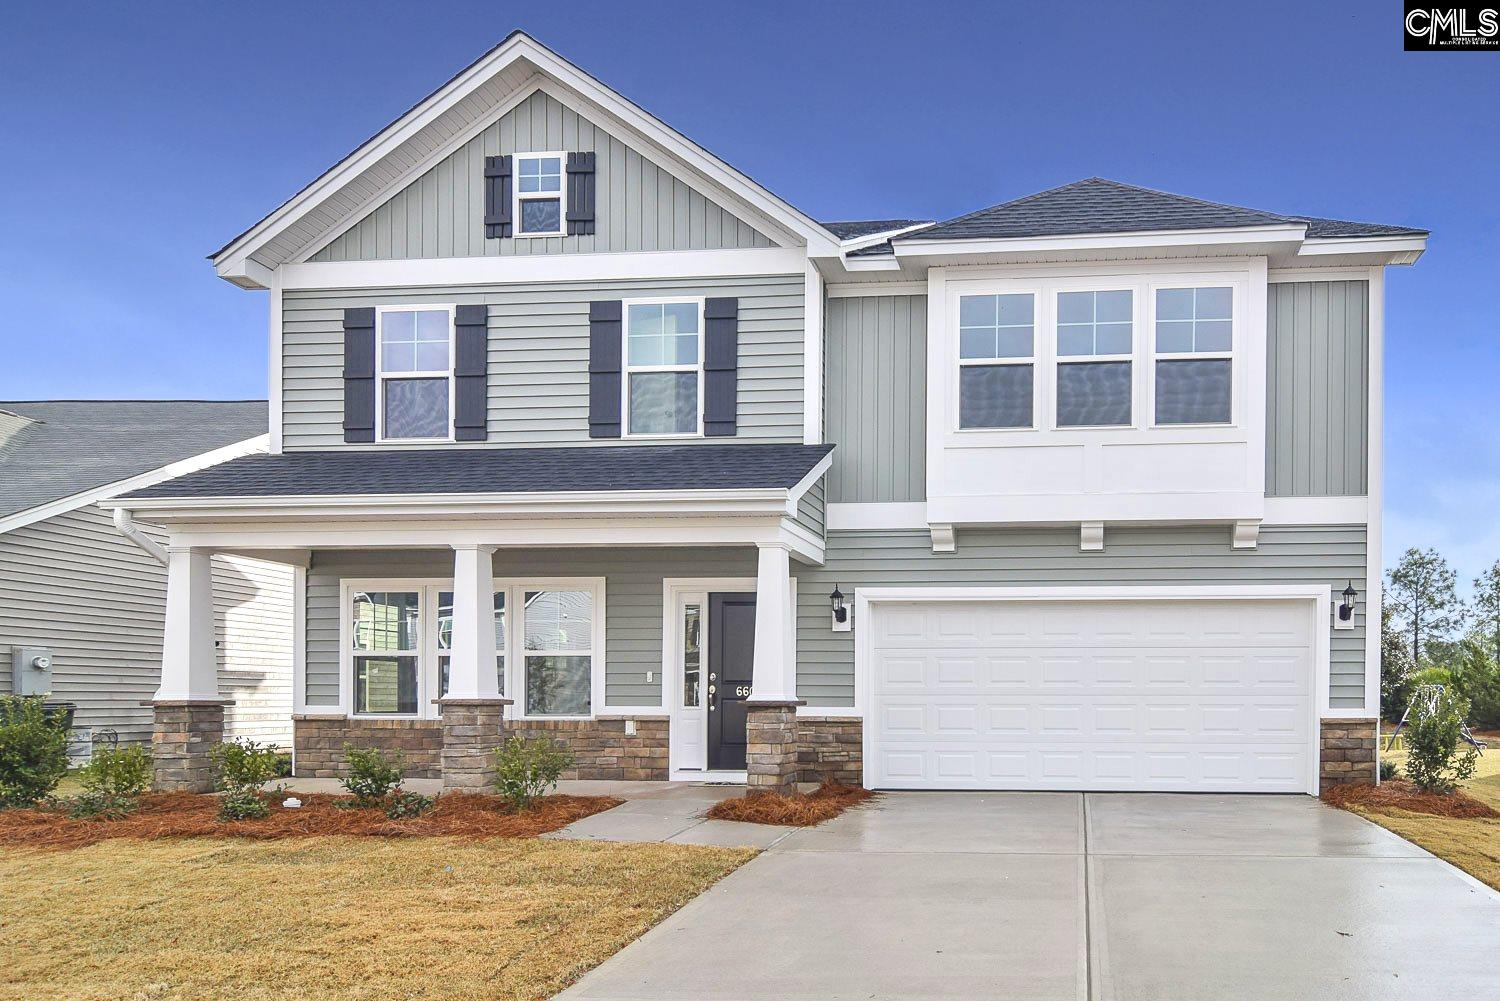 660 Blue Ledge Lexington, SC 29072